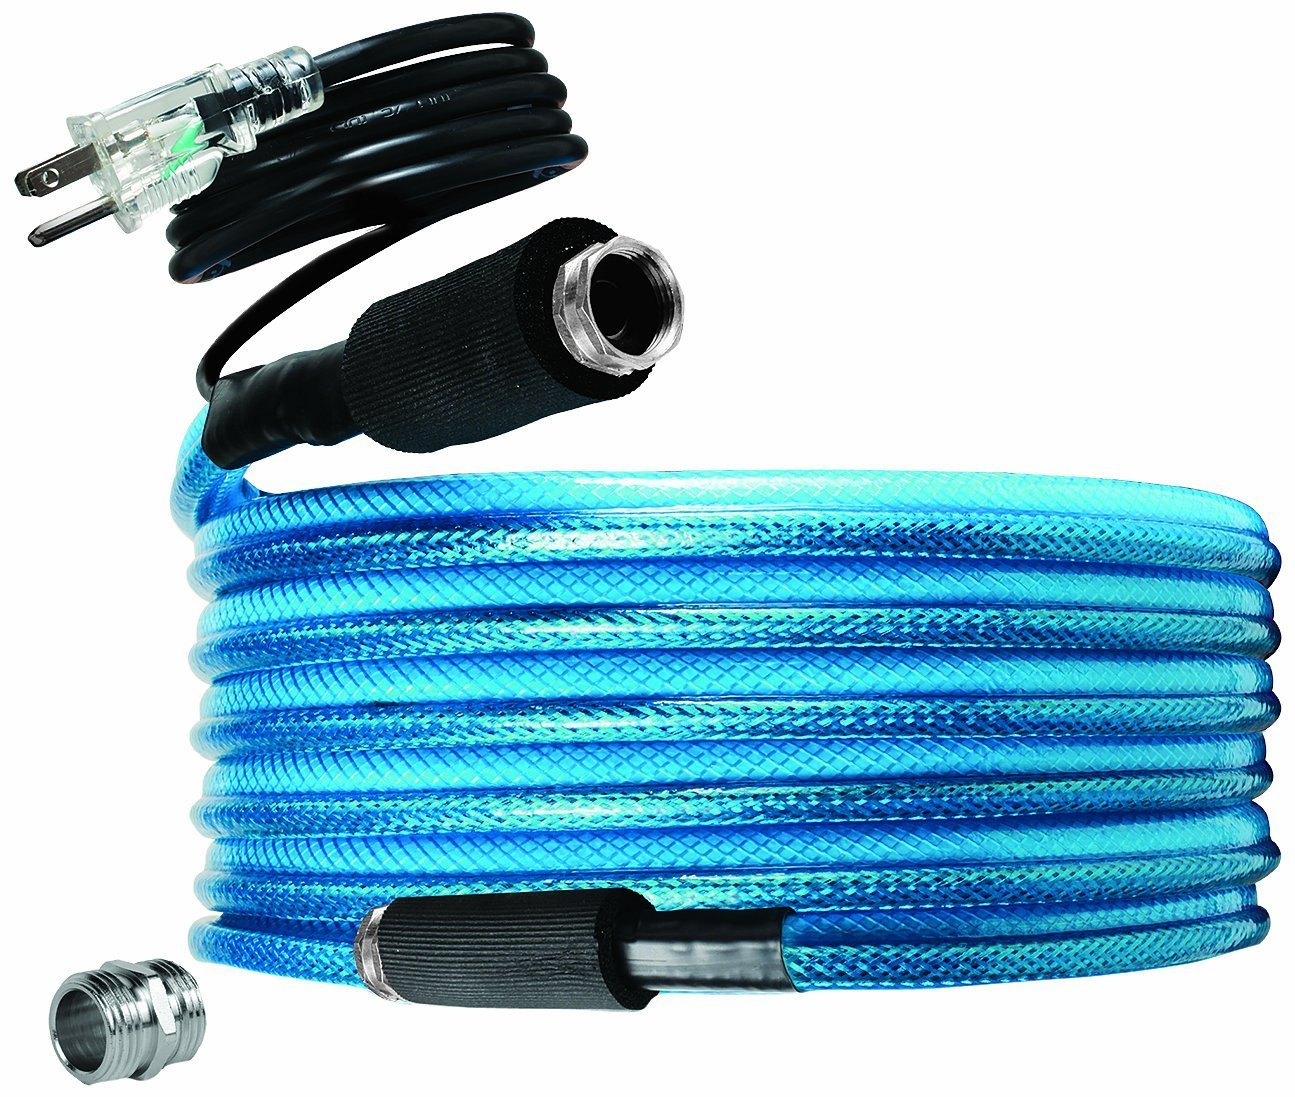 "Camco 25ft TastePURE Heated Drinking Water Hose - Lead and BPA Free, Reinforced for Maximum Kink Resistance, 1/2"" Inner Diameter (22922)"